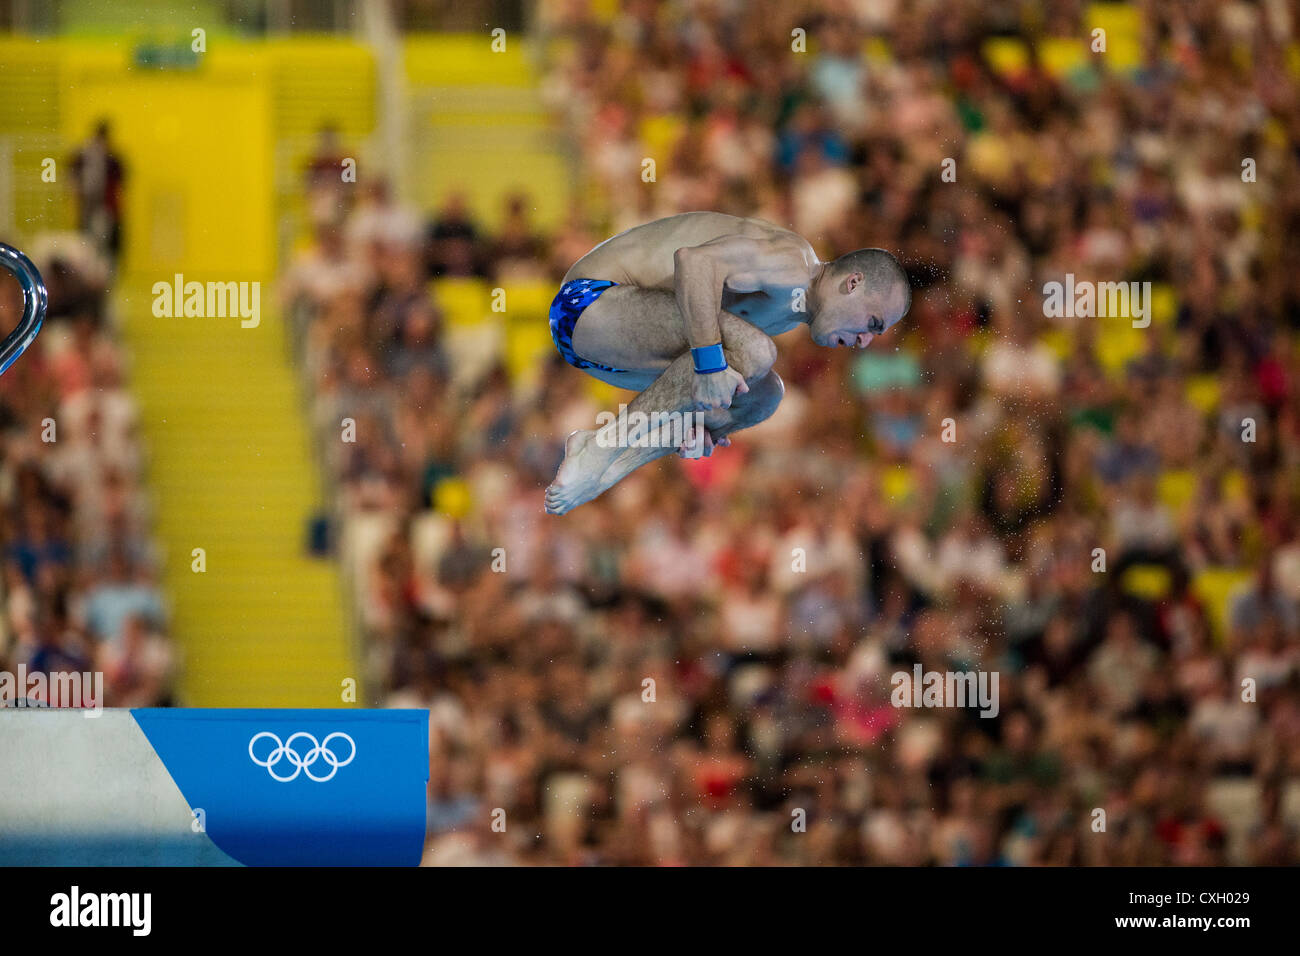 Gleb Galperin (RUS) competing in 10m platform diving at the Olympic Summer Games, London 2012 - Stock Image